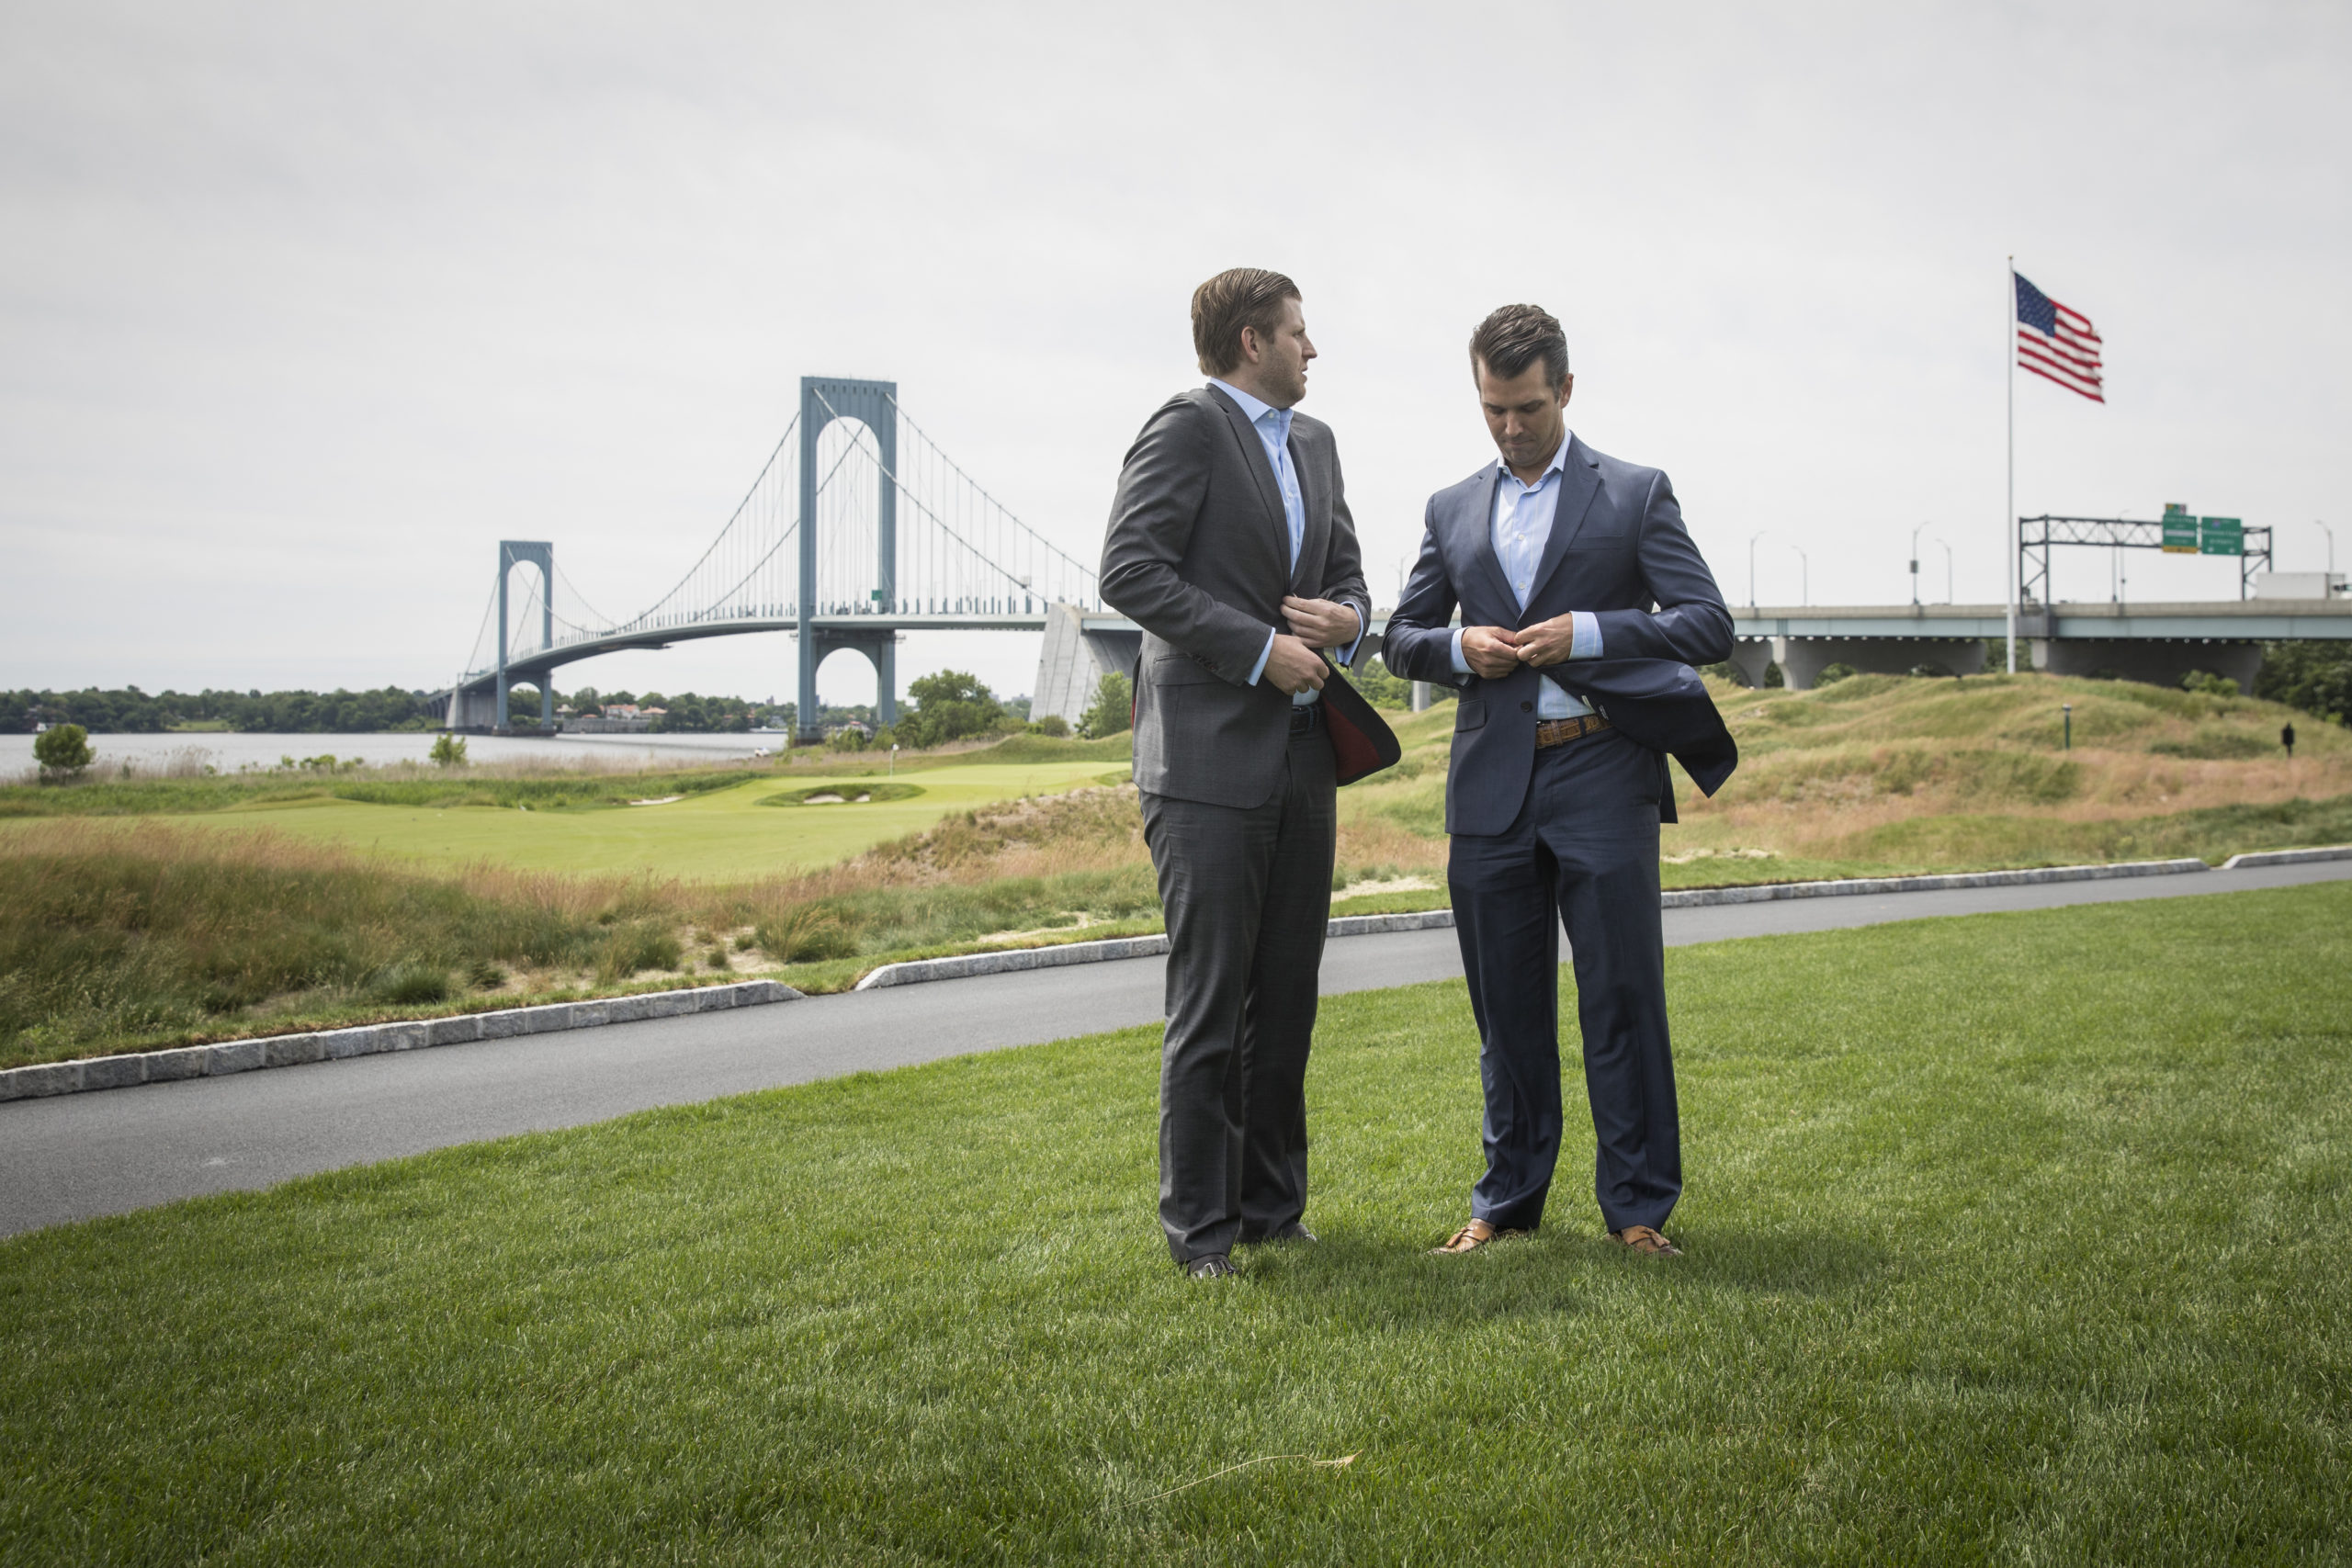 Eric Trump and Donald Trump Jr. prepare for the ribbon-cutting event at Trump Golf Links at Ferry Point on June 11, 2018. (Drew Angerer/Getty Images)